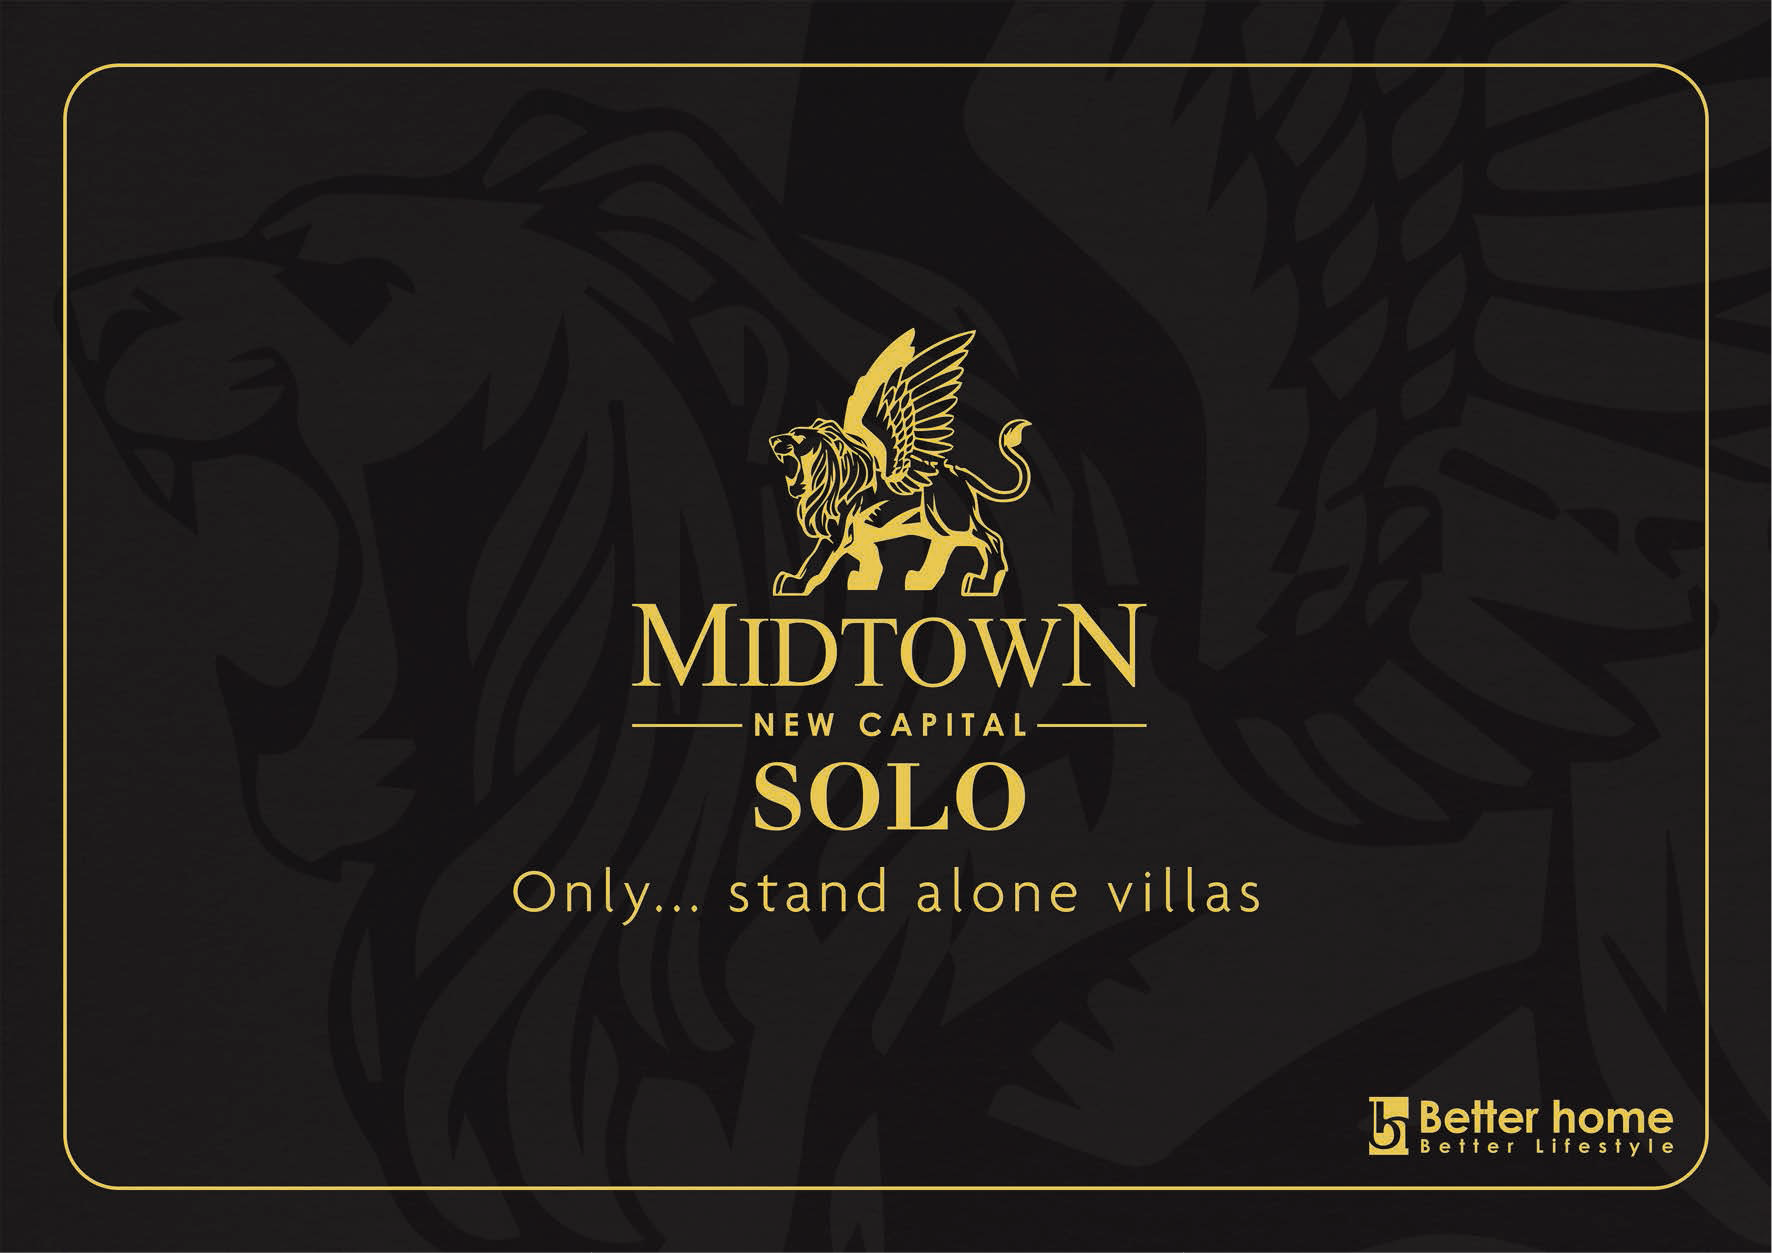 MIDTOWN New Capital - MIDTOWN Compound -MIDTOWN Better Home - MIDTOWN SOLO New Capital - MIDTOWN New Capital City